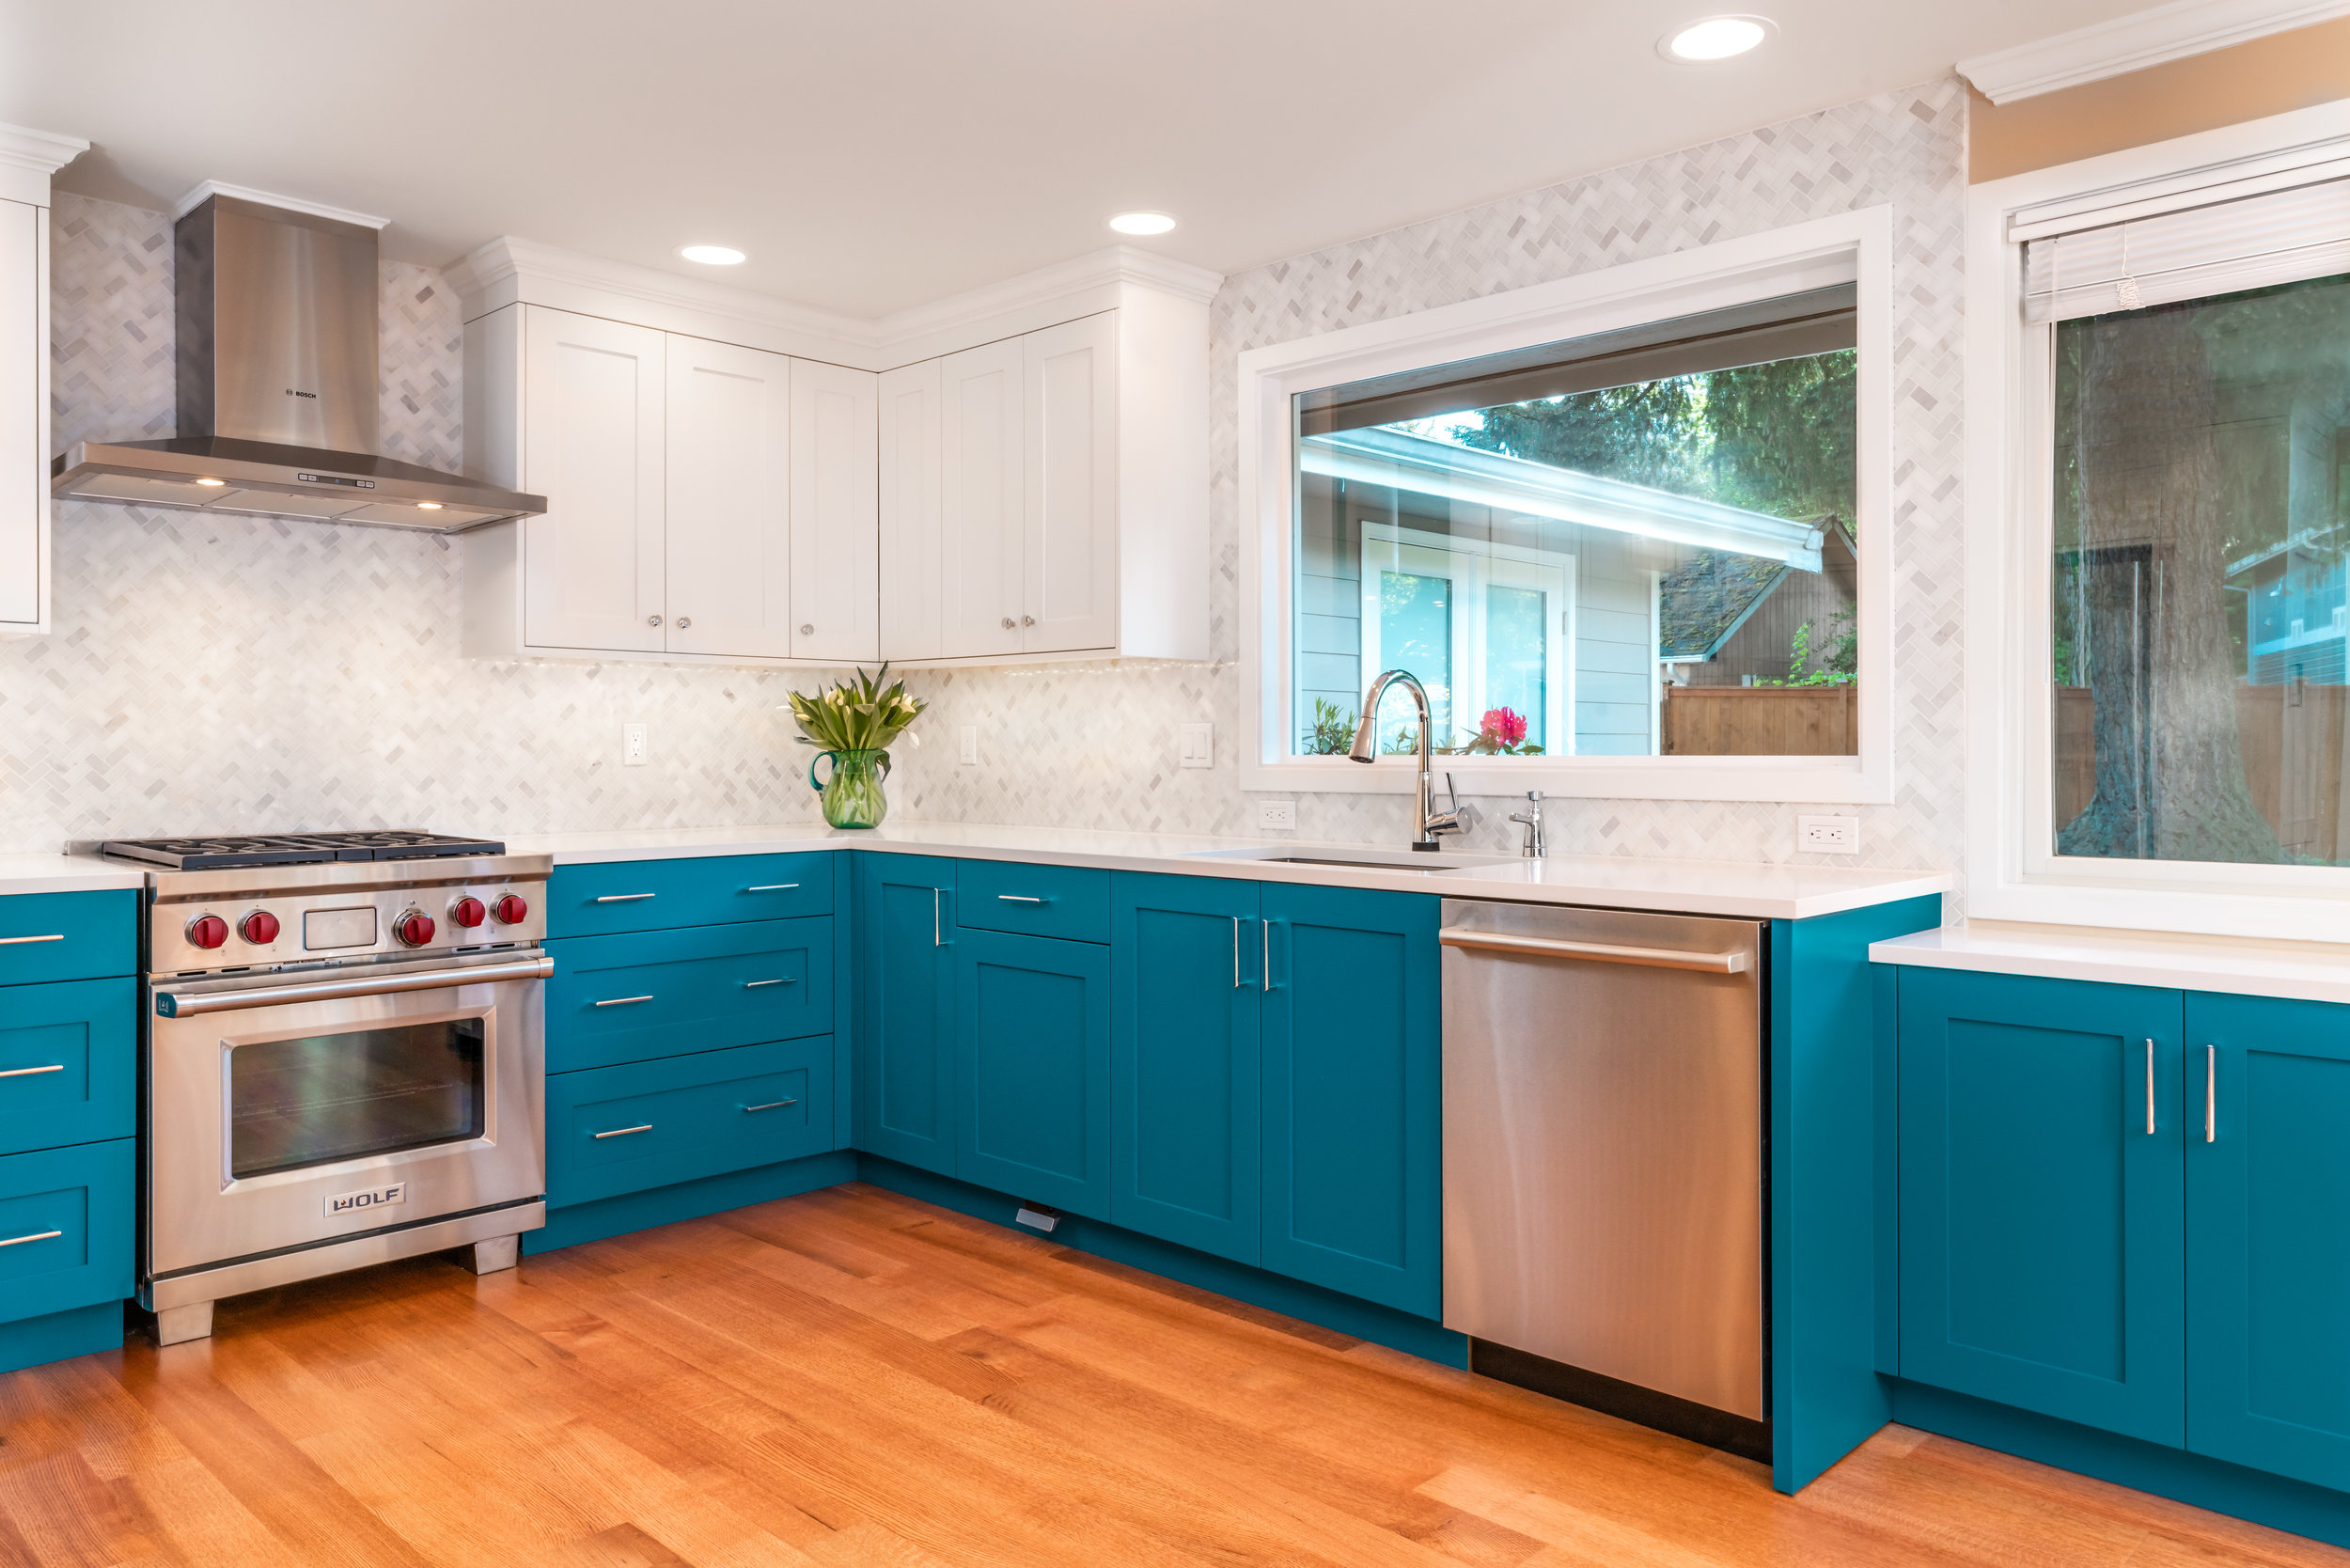 fixed-RiddleConstruction_Sulc_Kitchen_High_Res-1.jpg